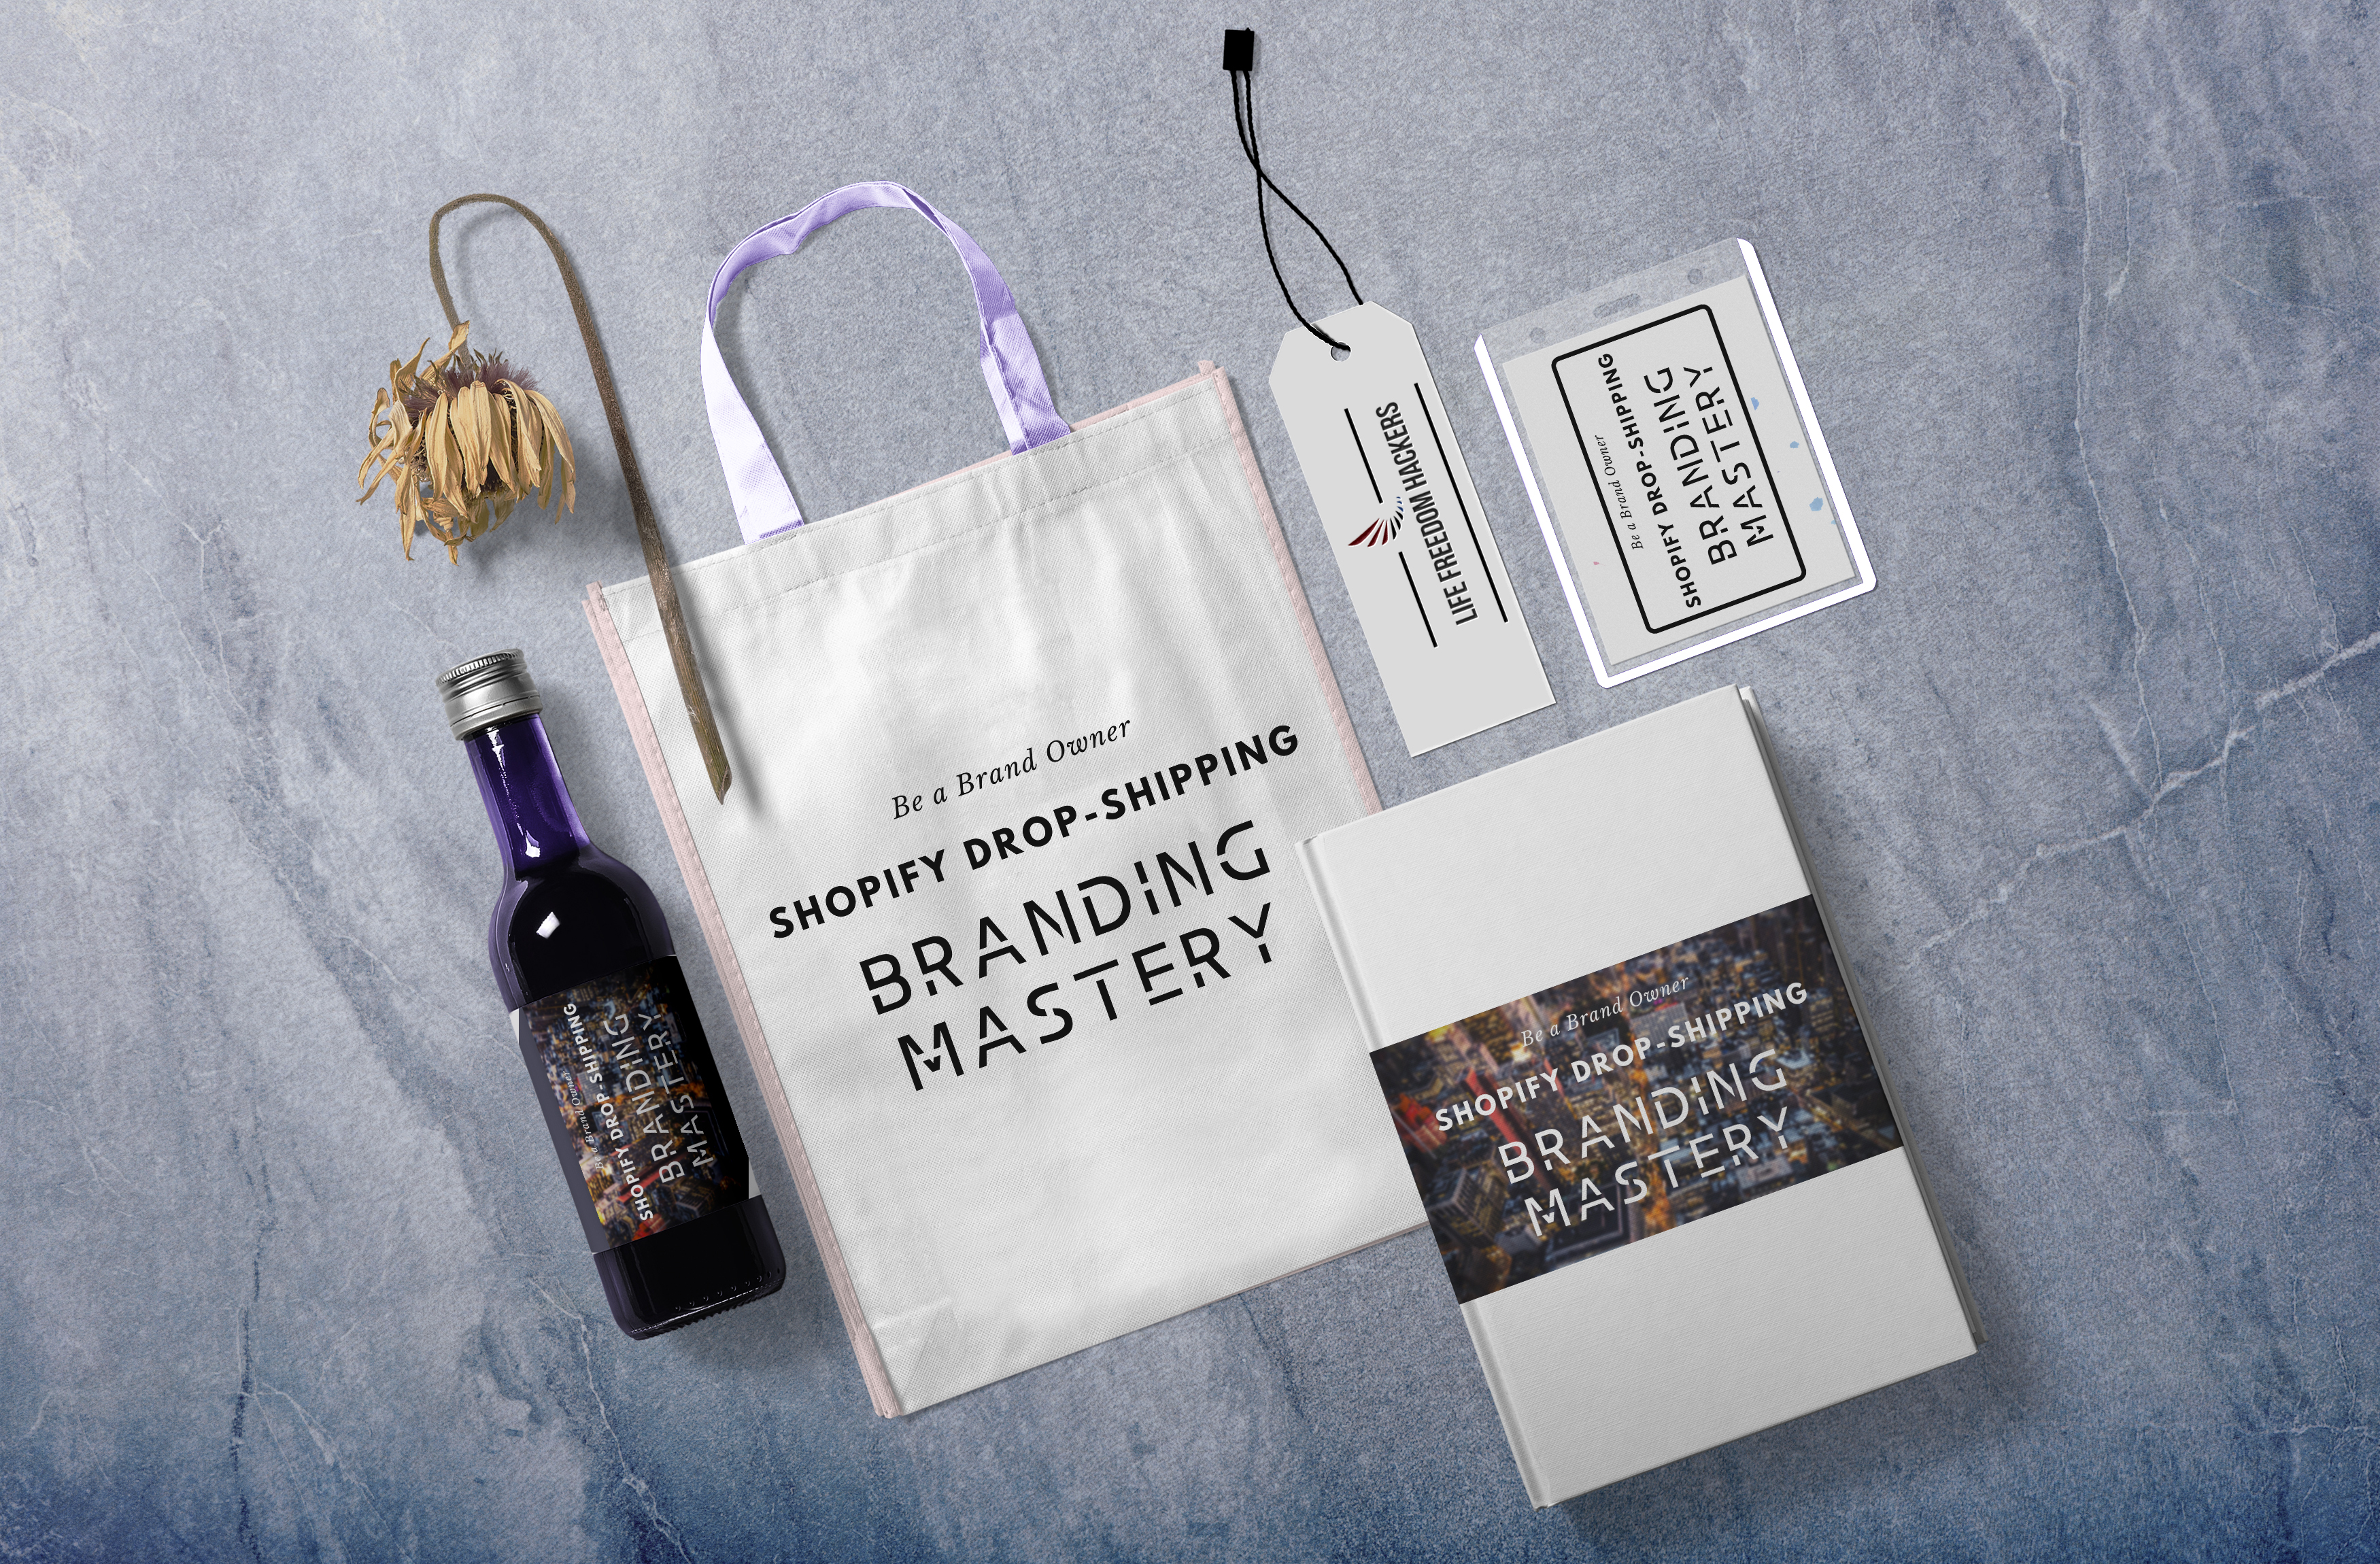 Shopify Drop-Shipping Branding Mastery : Be a Brand Owner